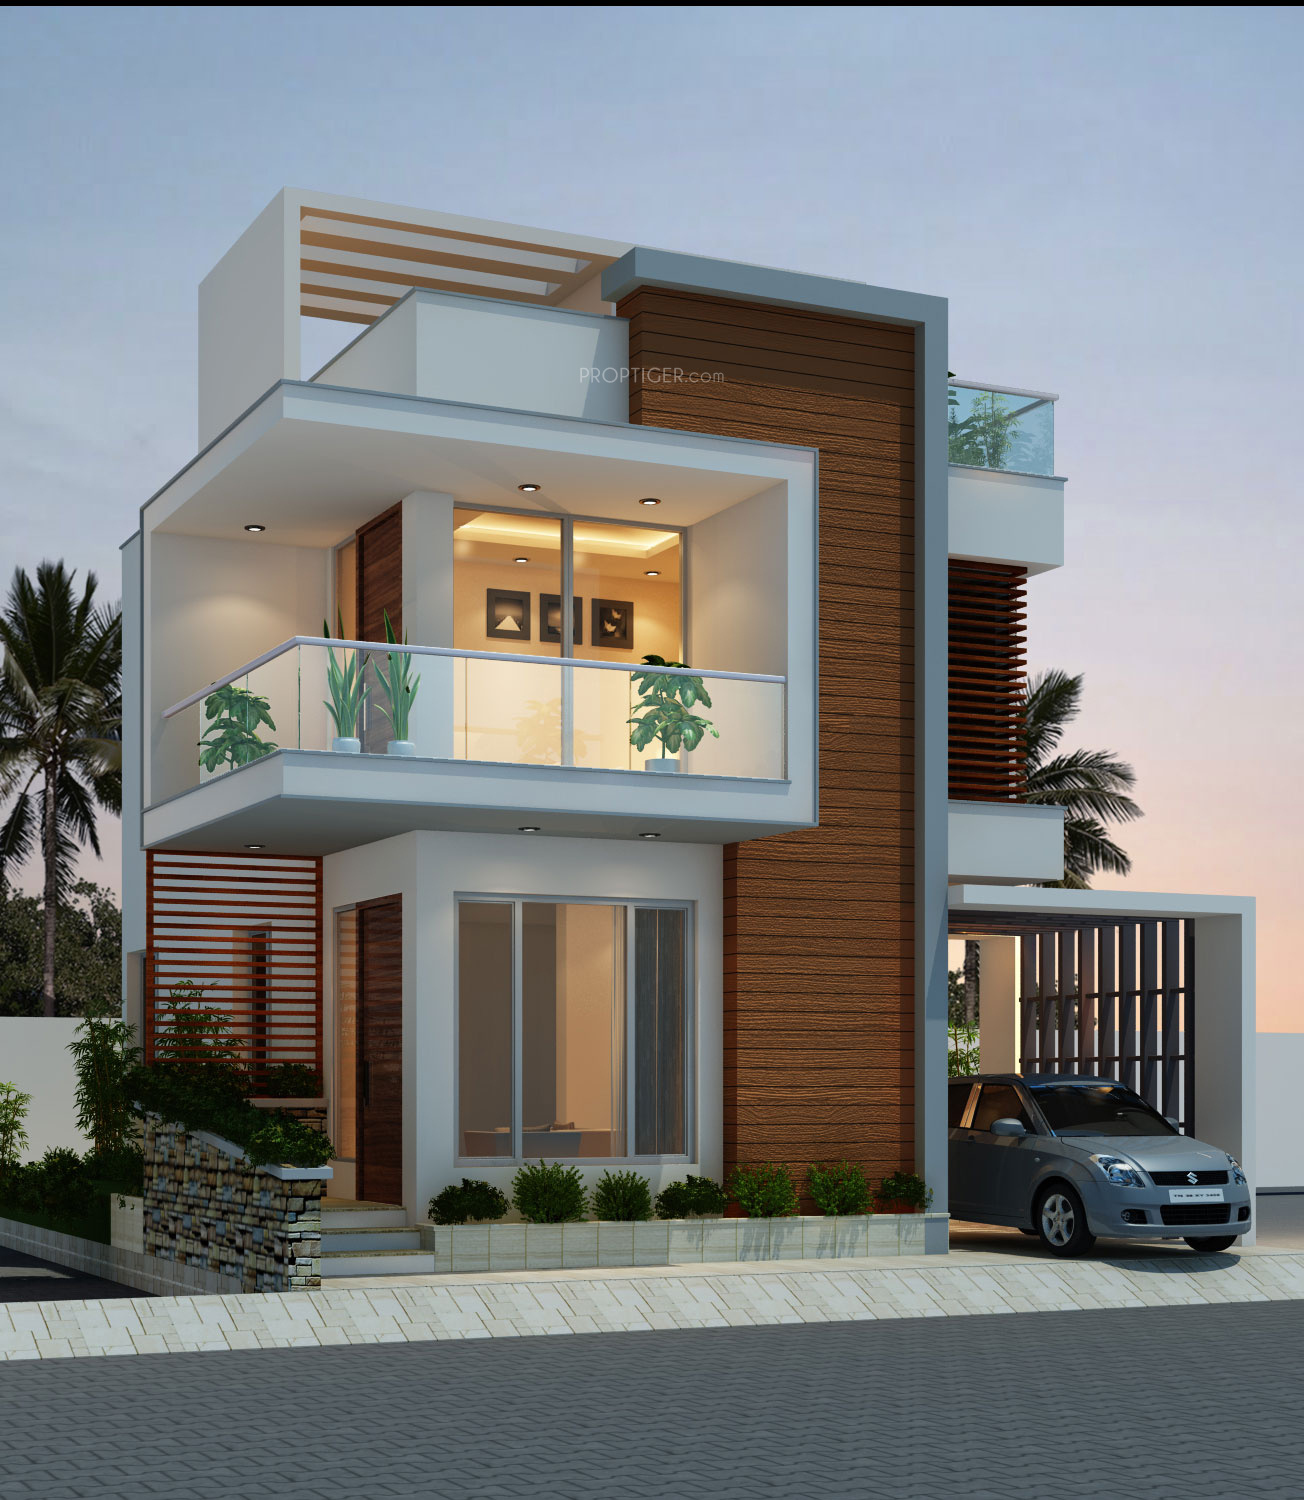 Top Floor Elevation : Headway fortune residency villa in perungalathur chennai